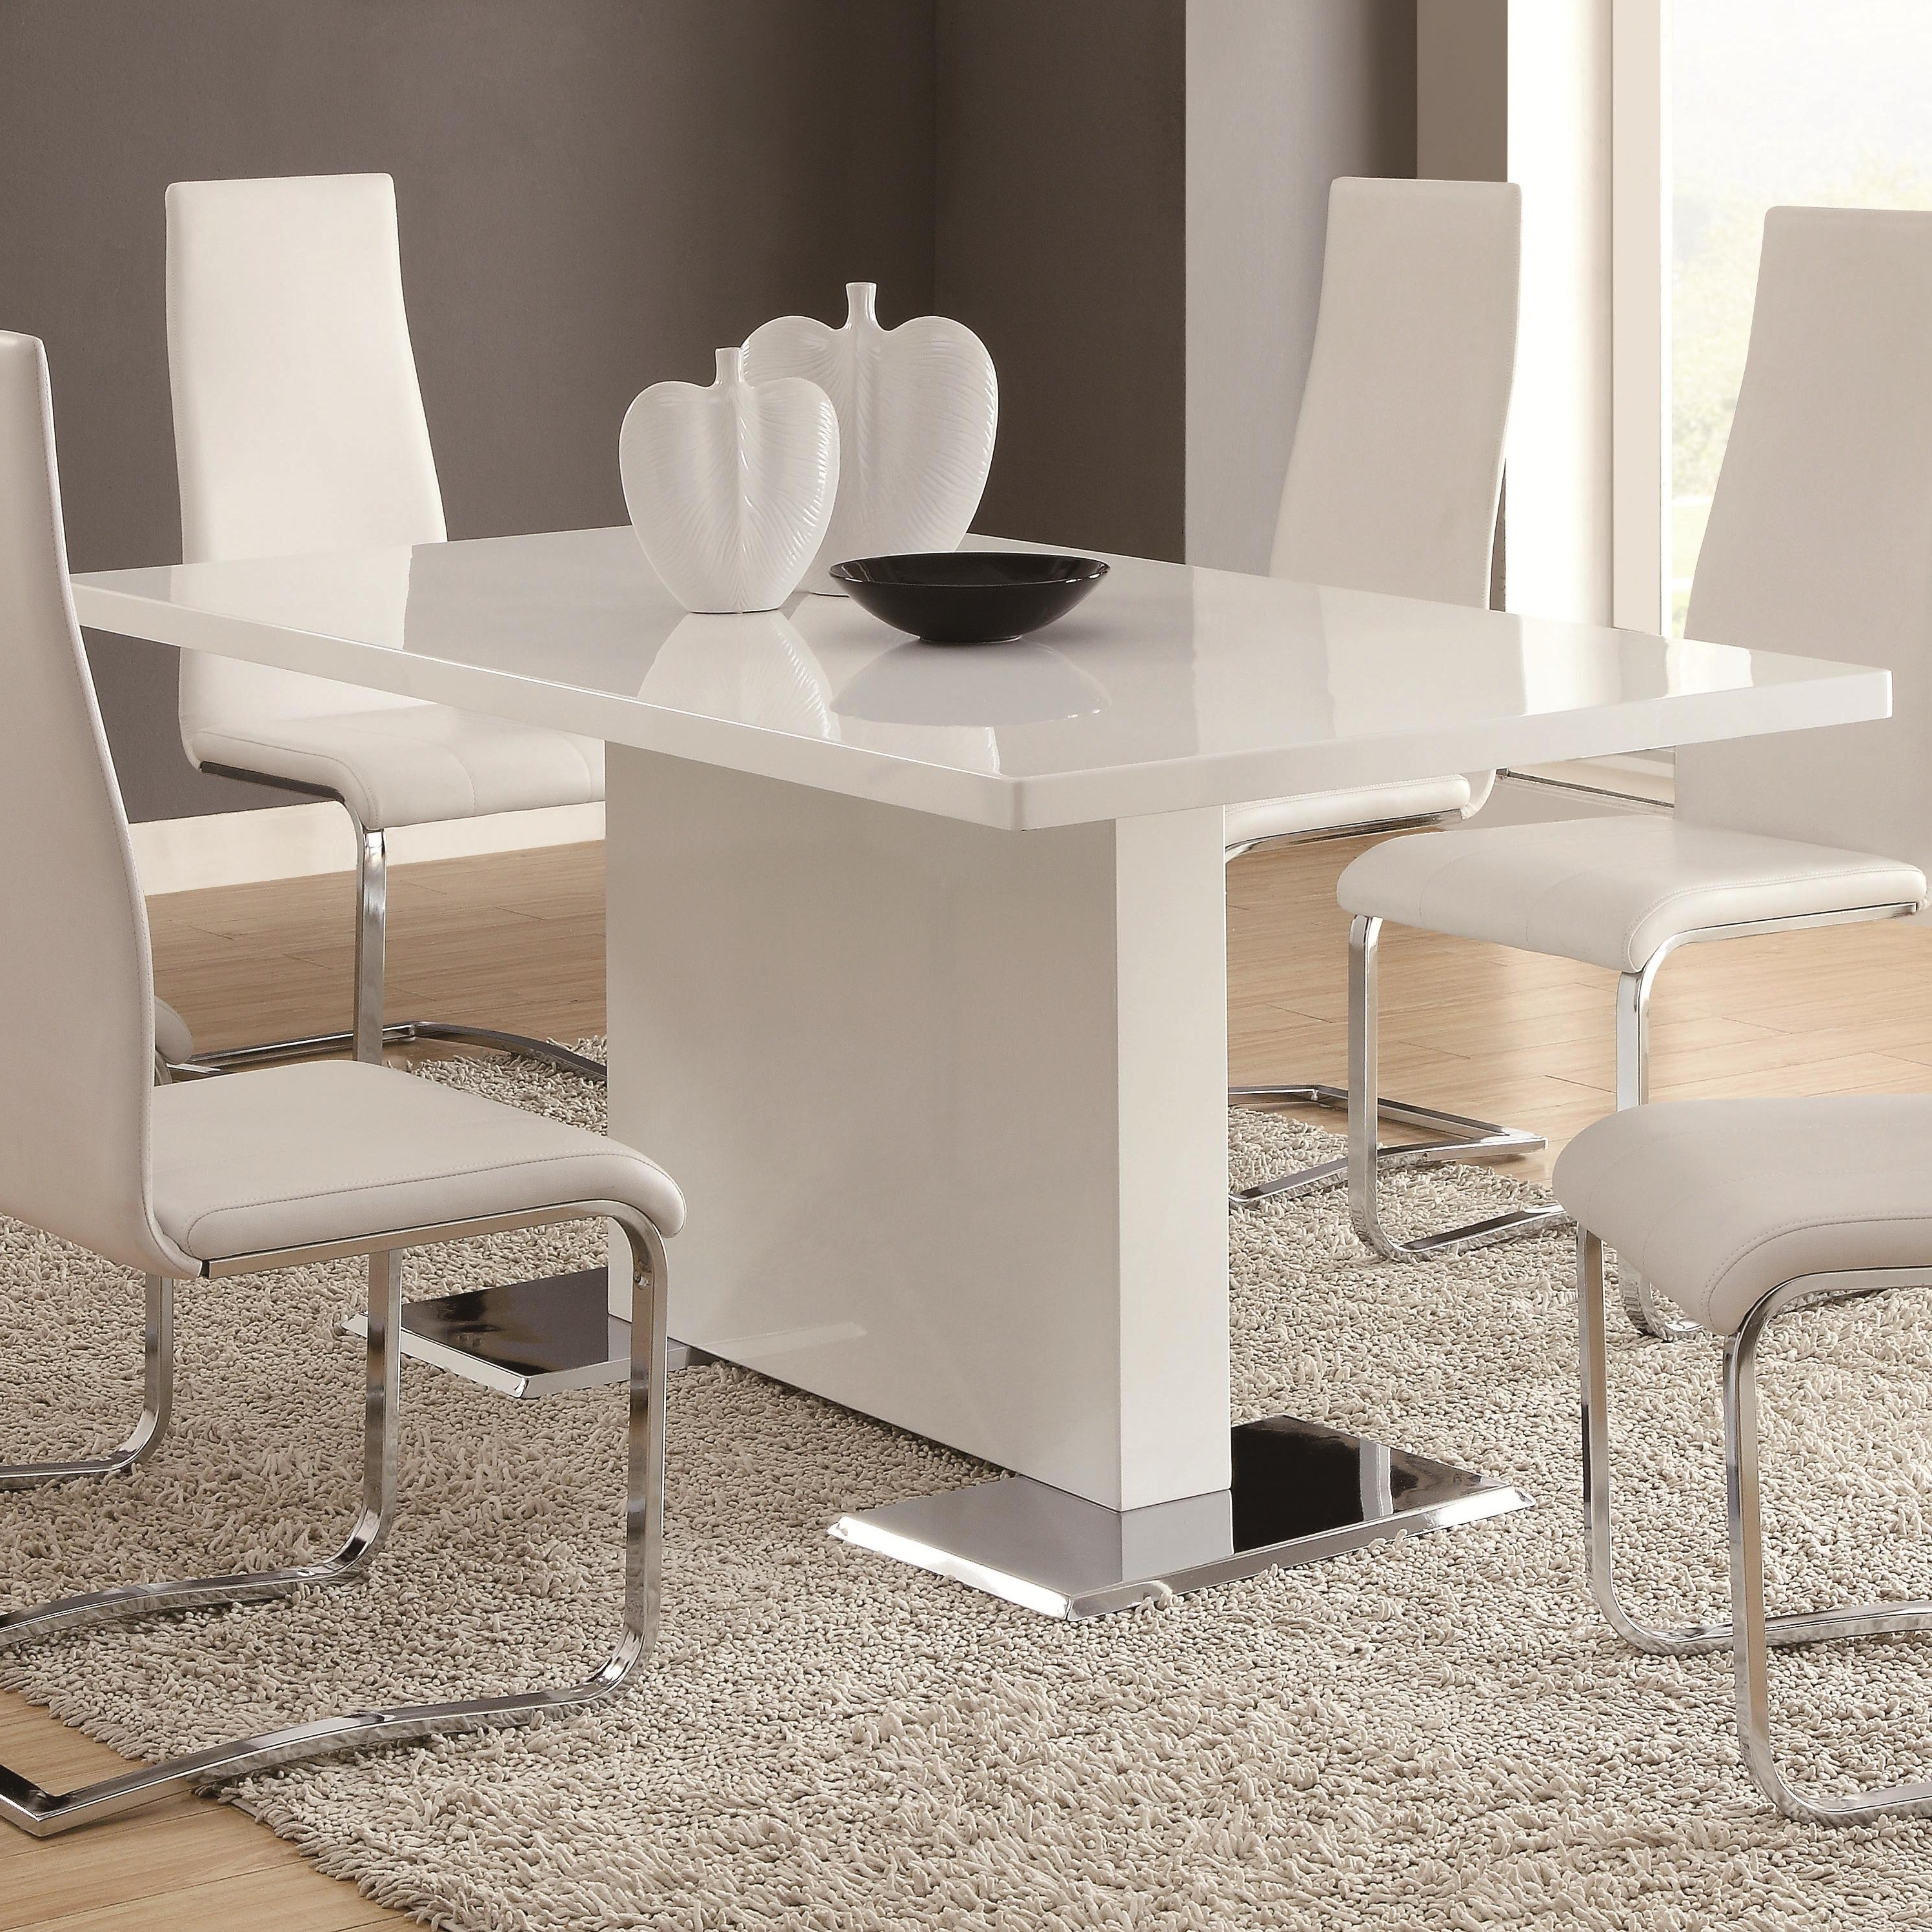 Famous Coaster Modern Dining 102310 White Dining Table With Chrome Metal Pertaining To Contemporary Dining Furniture (View 11 of 25)